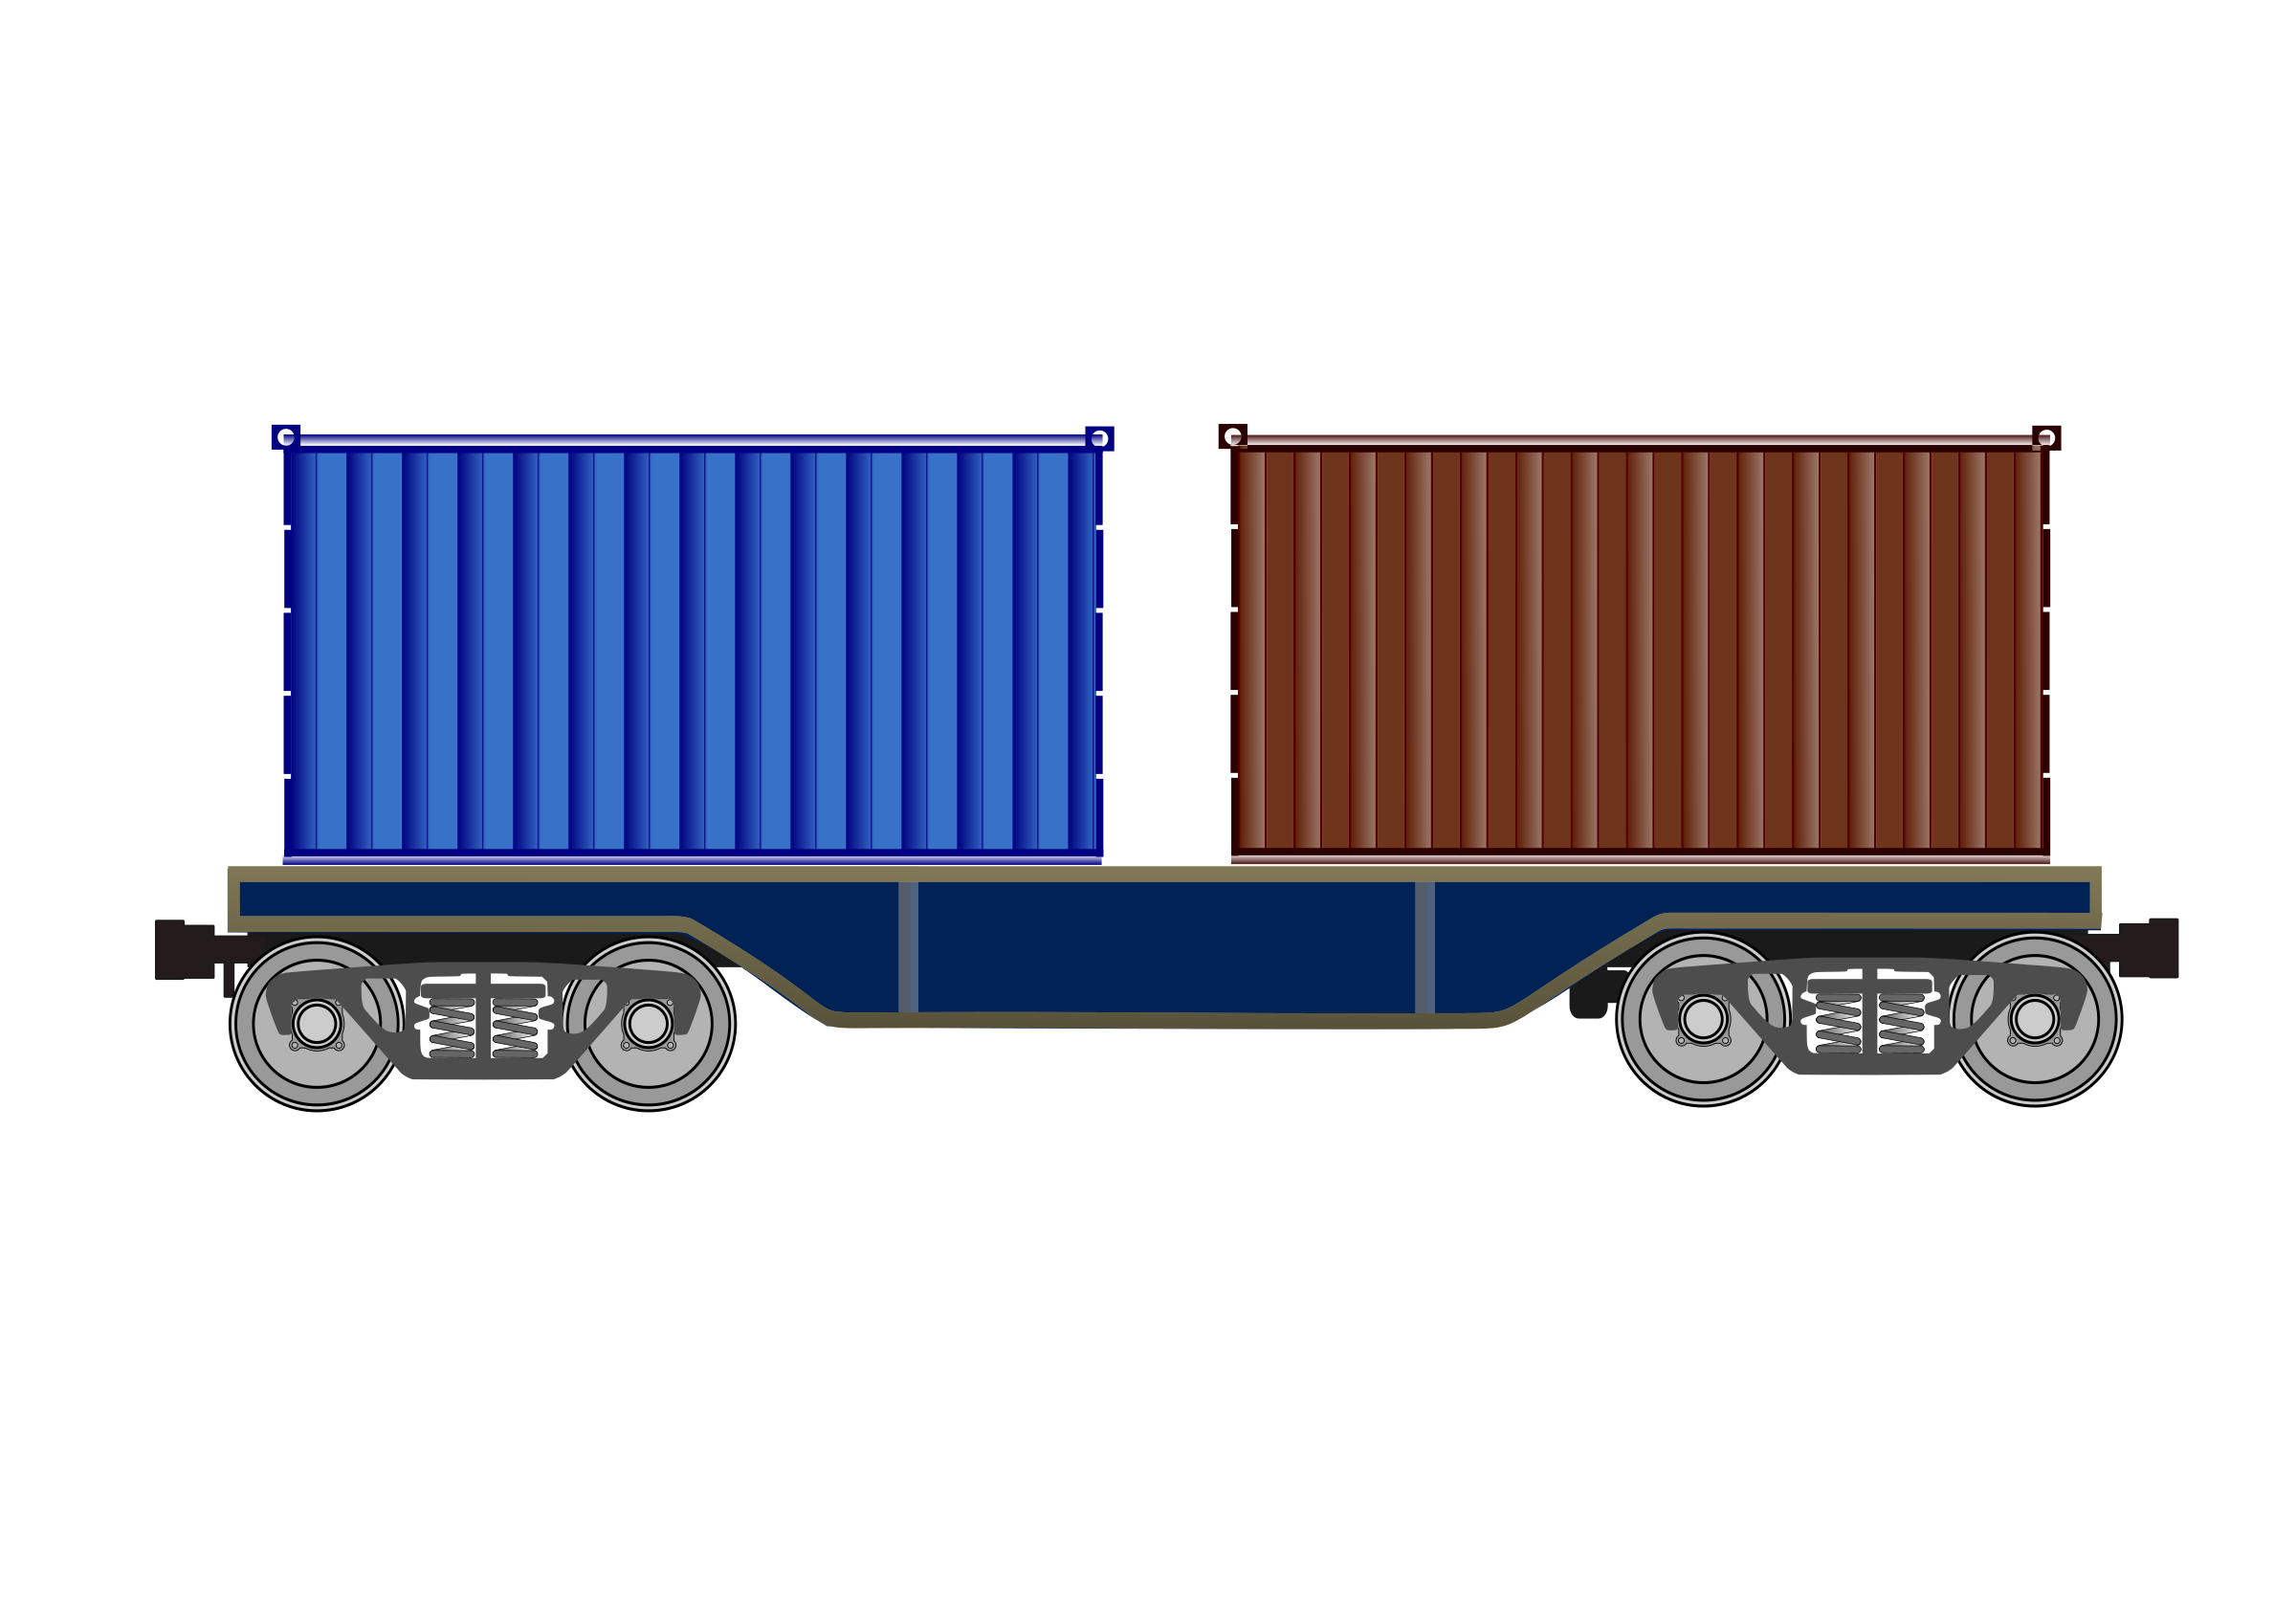 Clipart train freight train. Flat wagon icons png